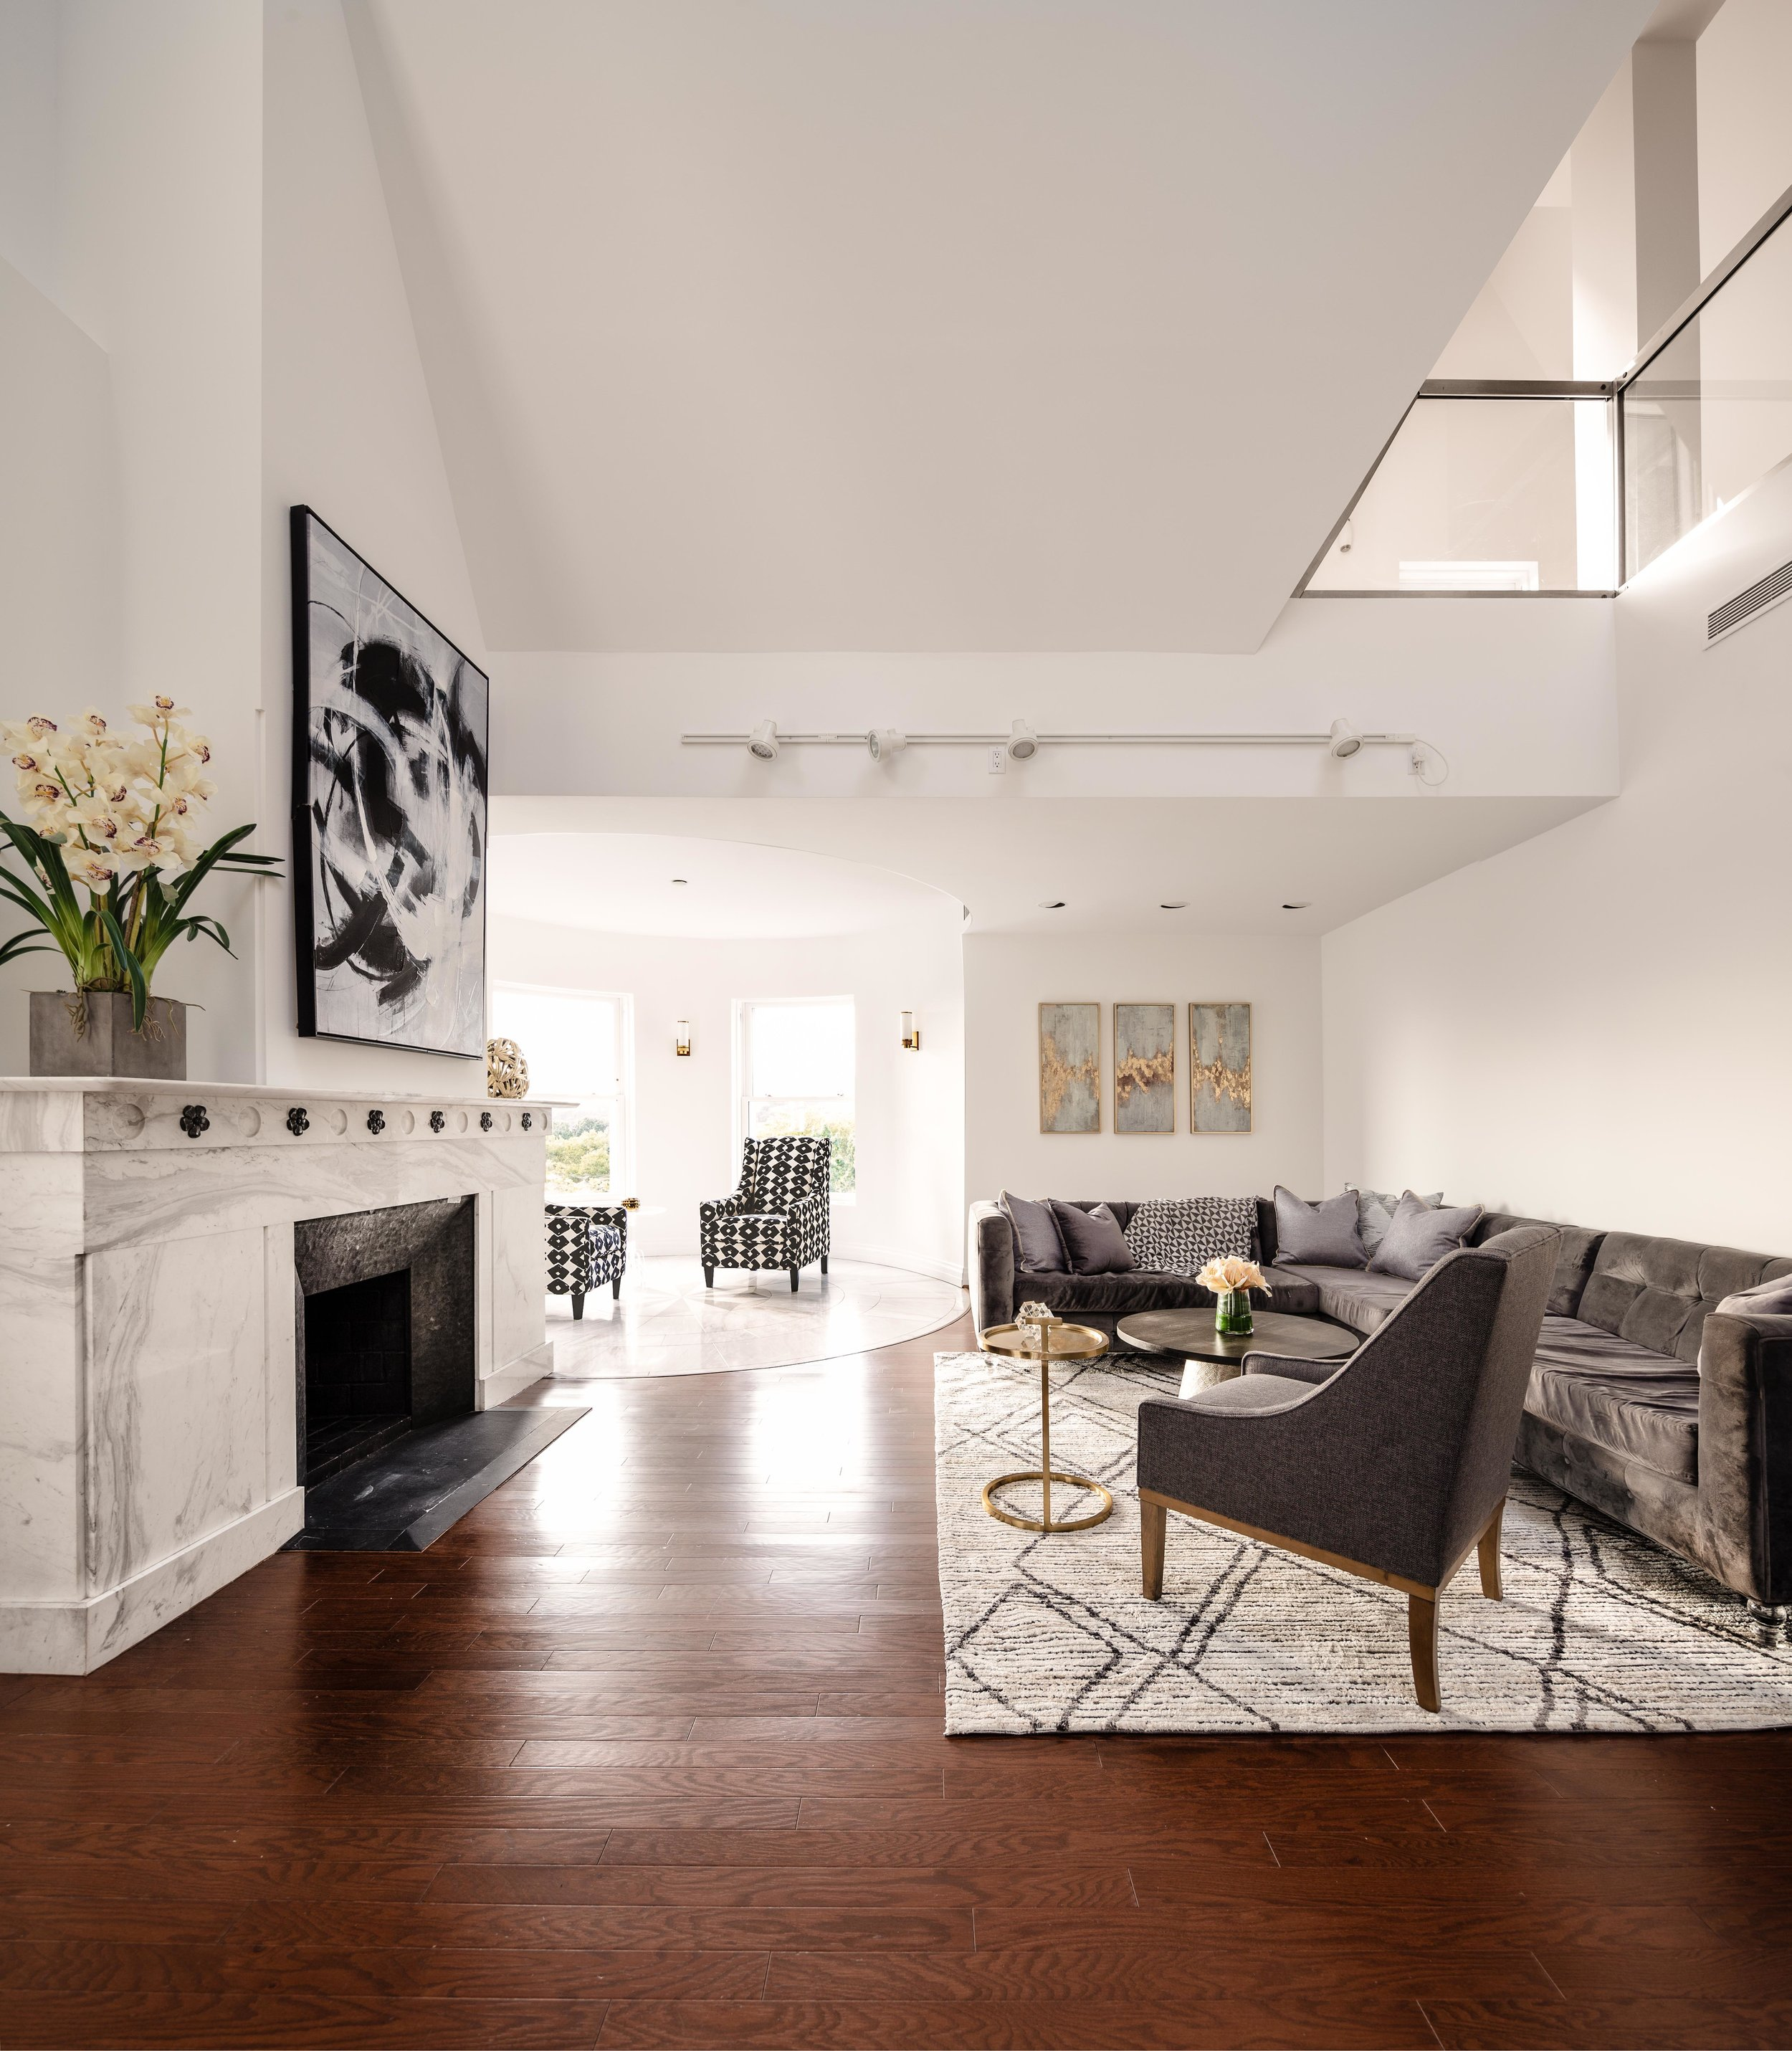 Interiors Photography - Lounge Space